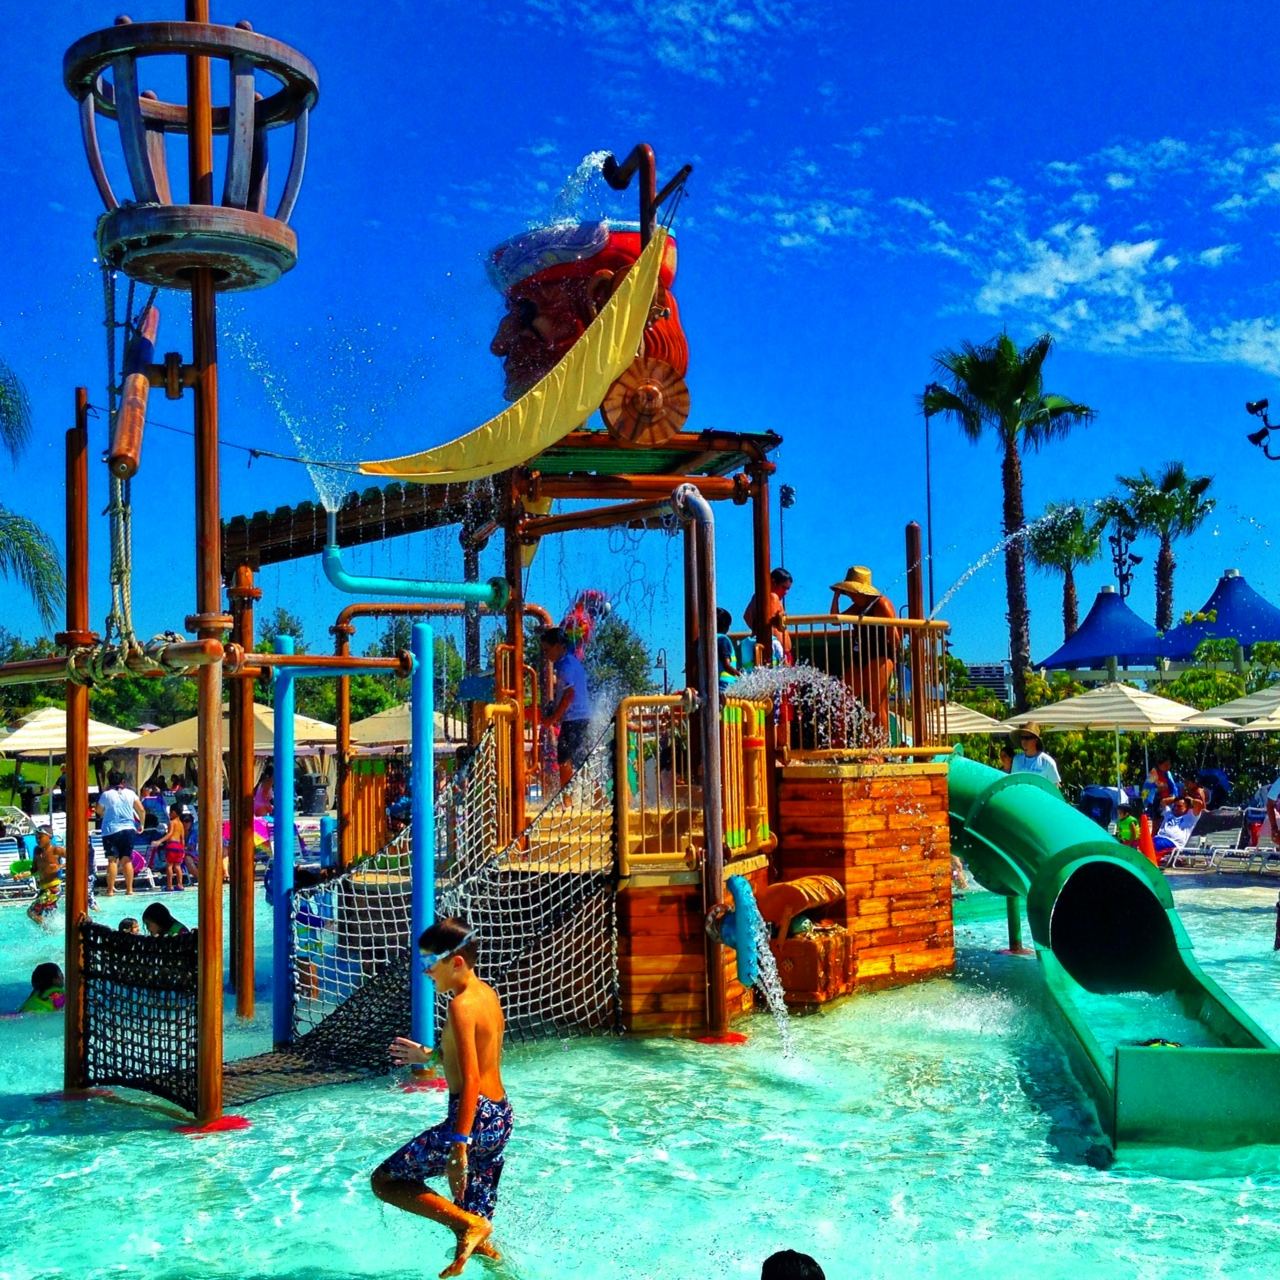 Splash La Mirada Water Park Oc Mom Blog